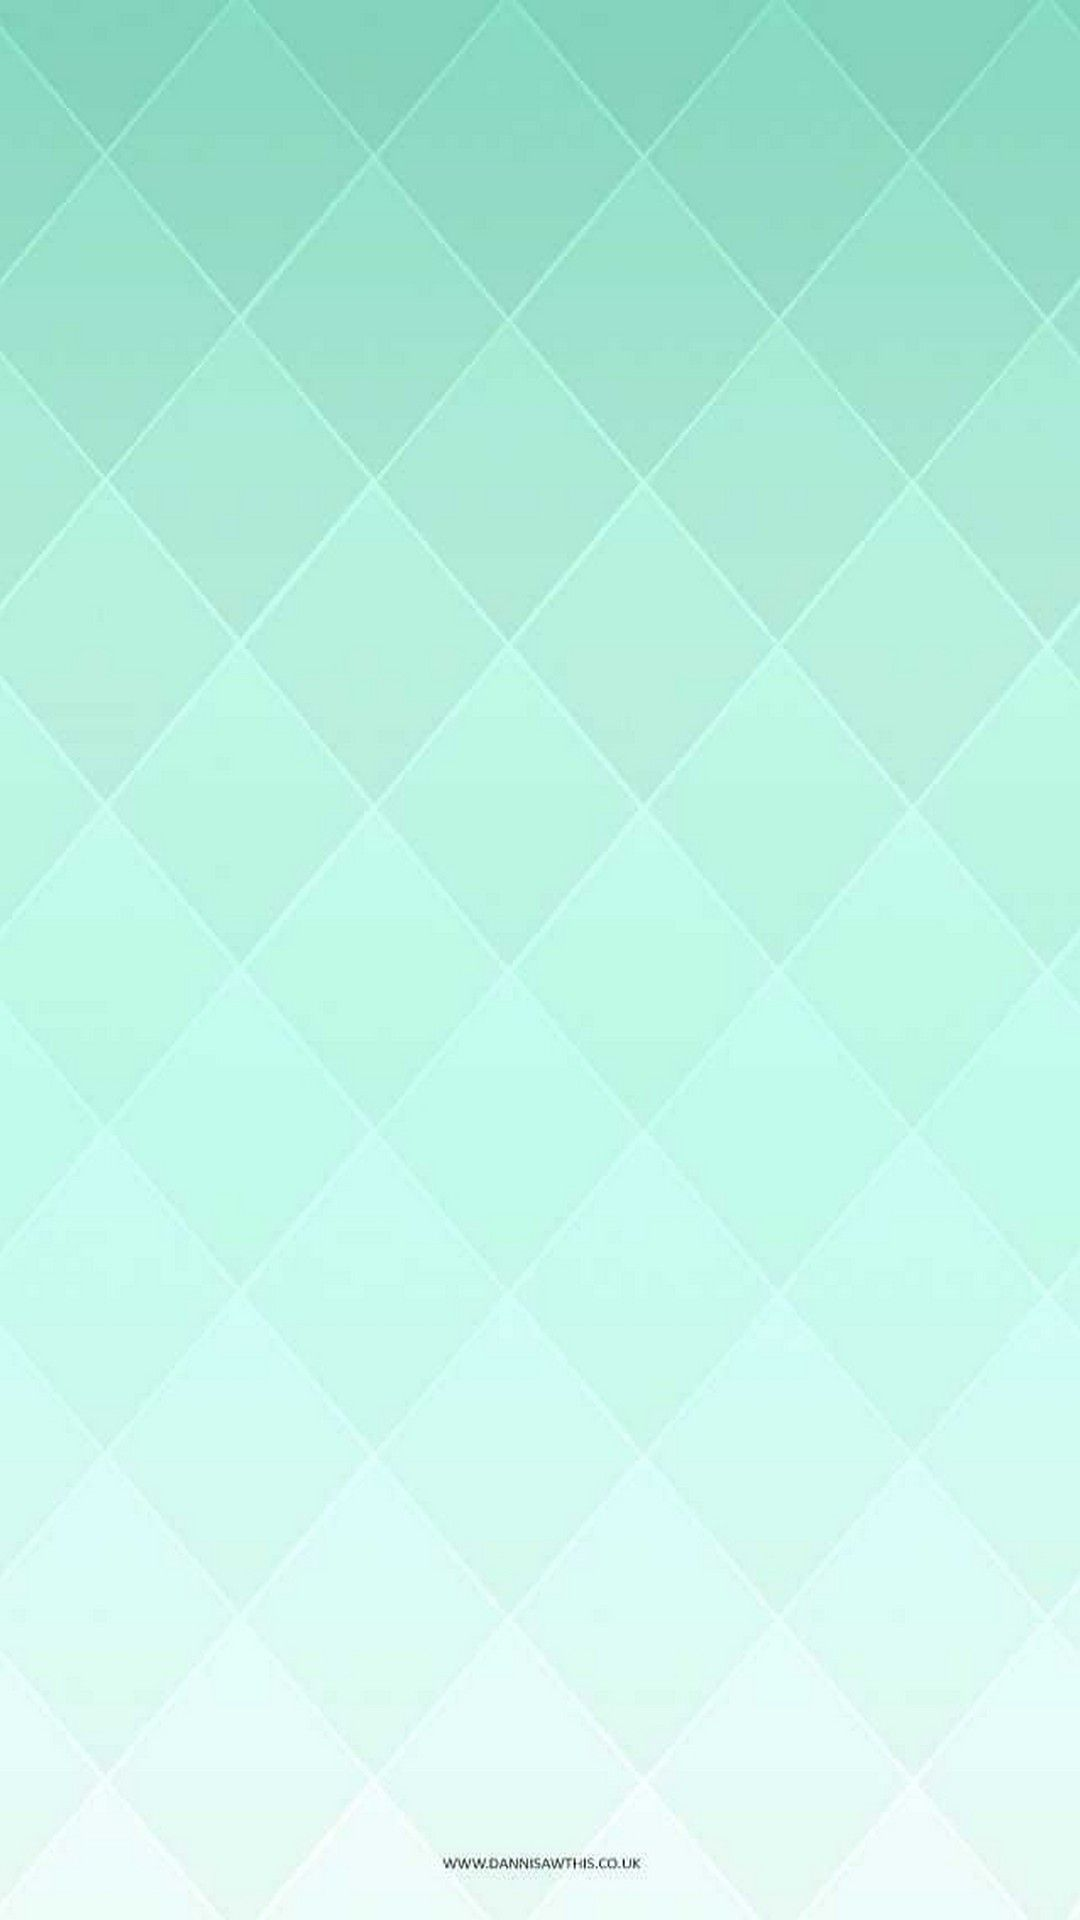 Turquoise And Gold Wallpaper Mobile In 2020 Mint Green Wallpaper Mint Green Wallpaper Iphone Mint Wallpaper